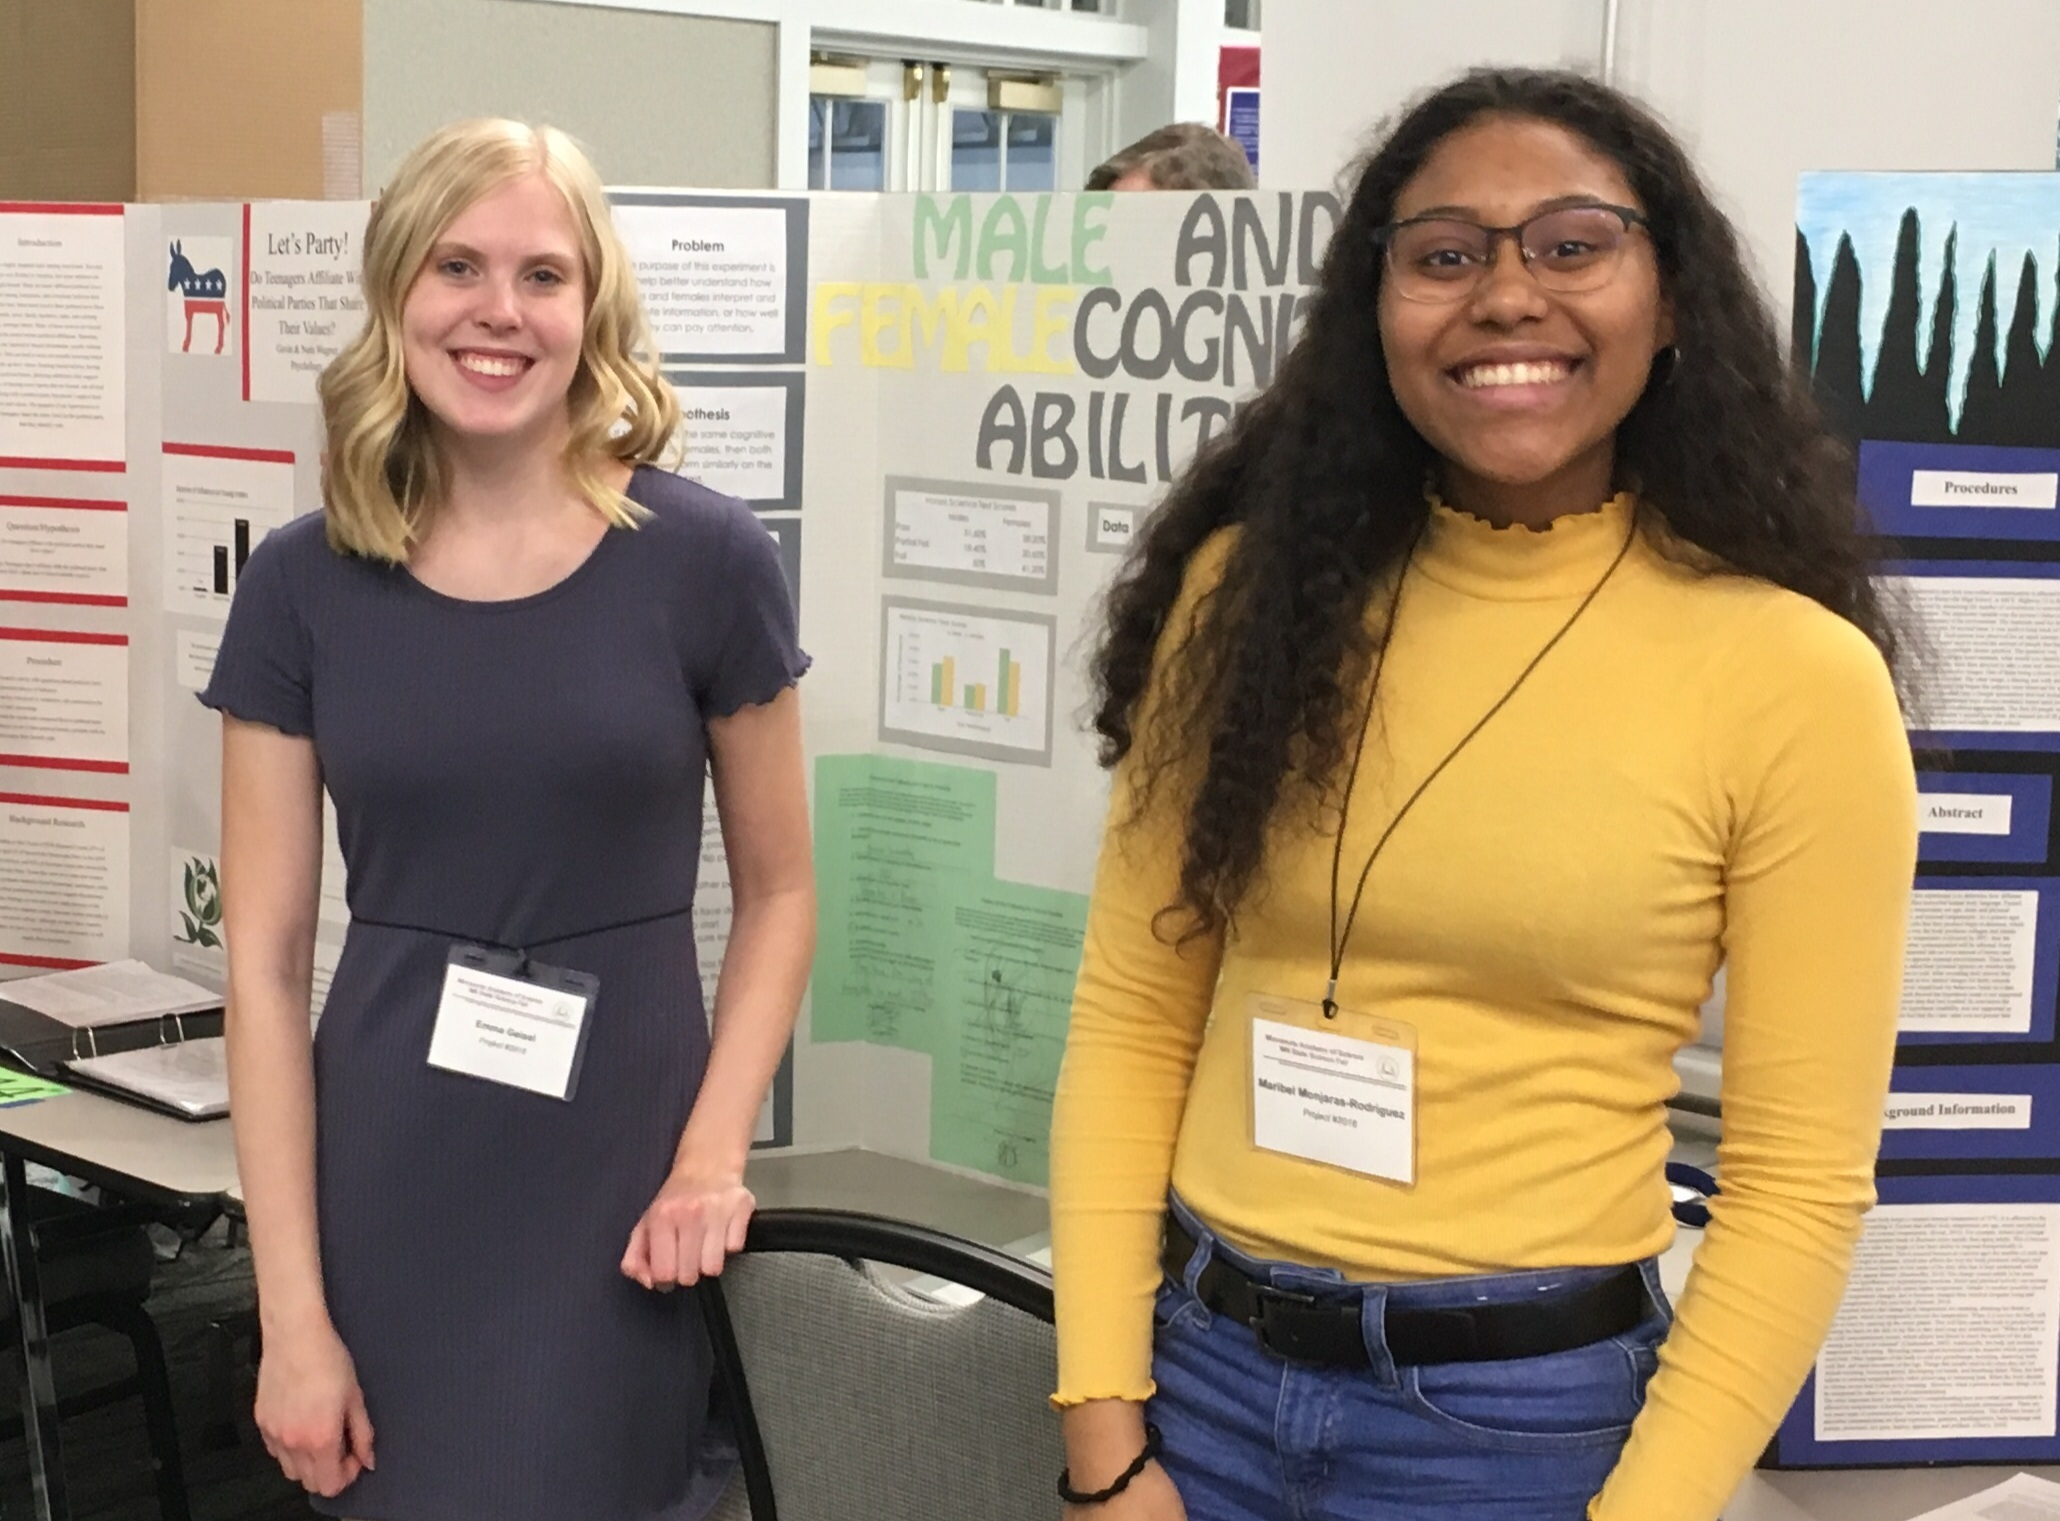 STATE SCIENCE & ENGINEERING FAIR - More than 500 of Minnesota's best and brightest middle and high school students qualify for our state fair, out of 3,000 competing in eight regional fairs.Benilde-St. Margaret's School will host this year's fair March 26-28, 2020.